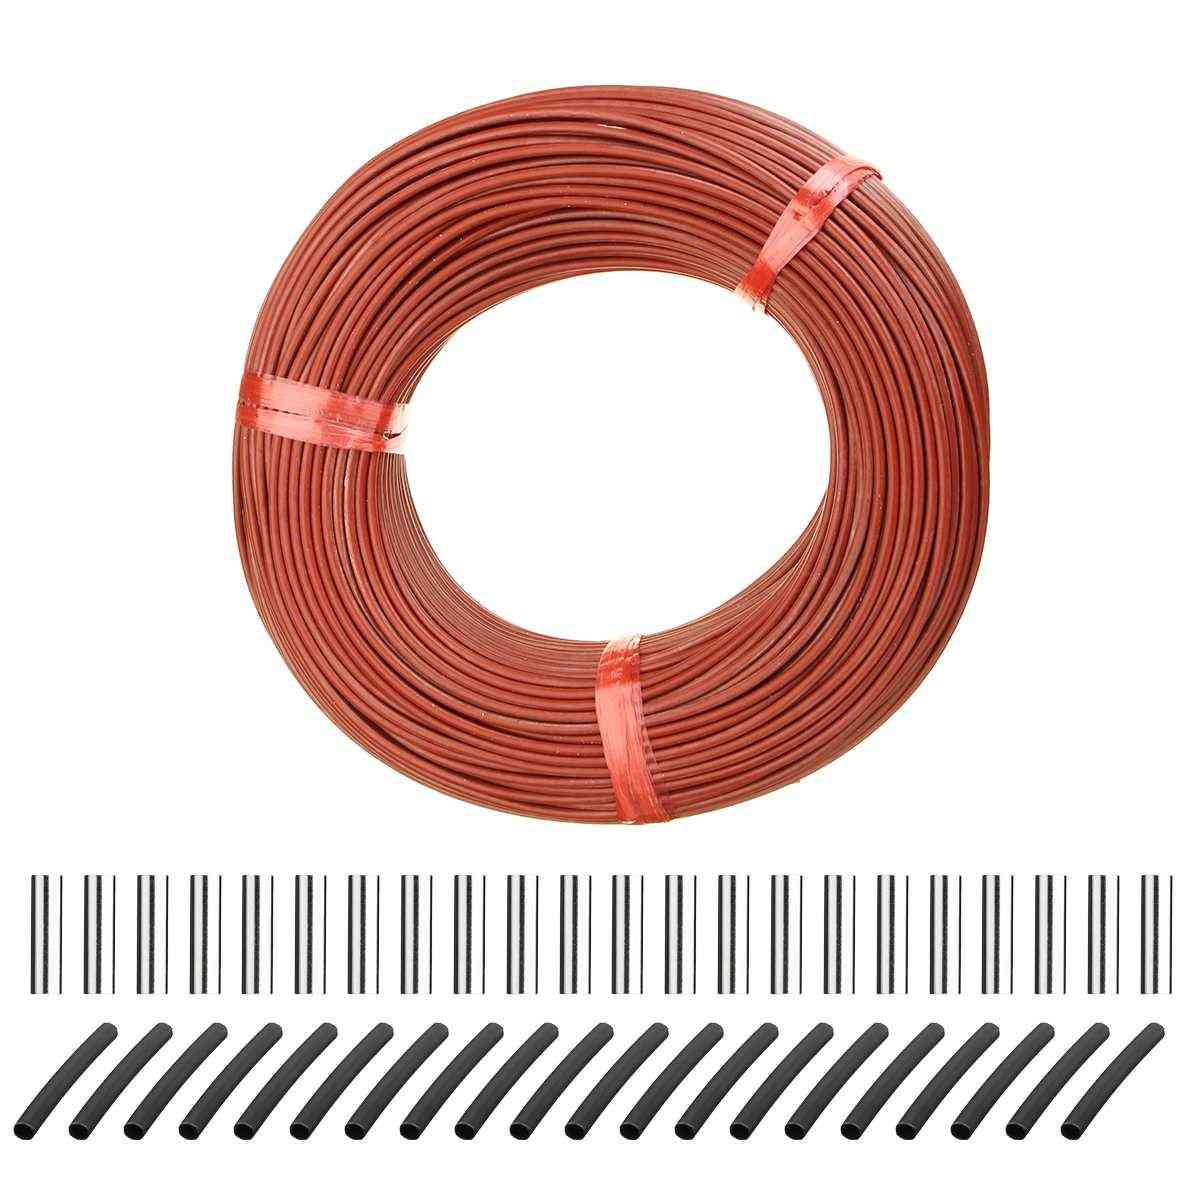 100m Carbon Fiber Infrared Floor Heating Cable